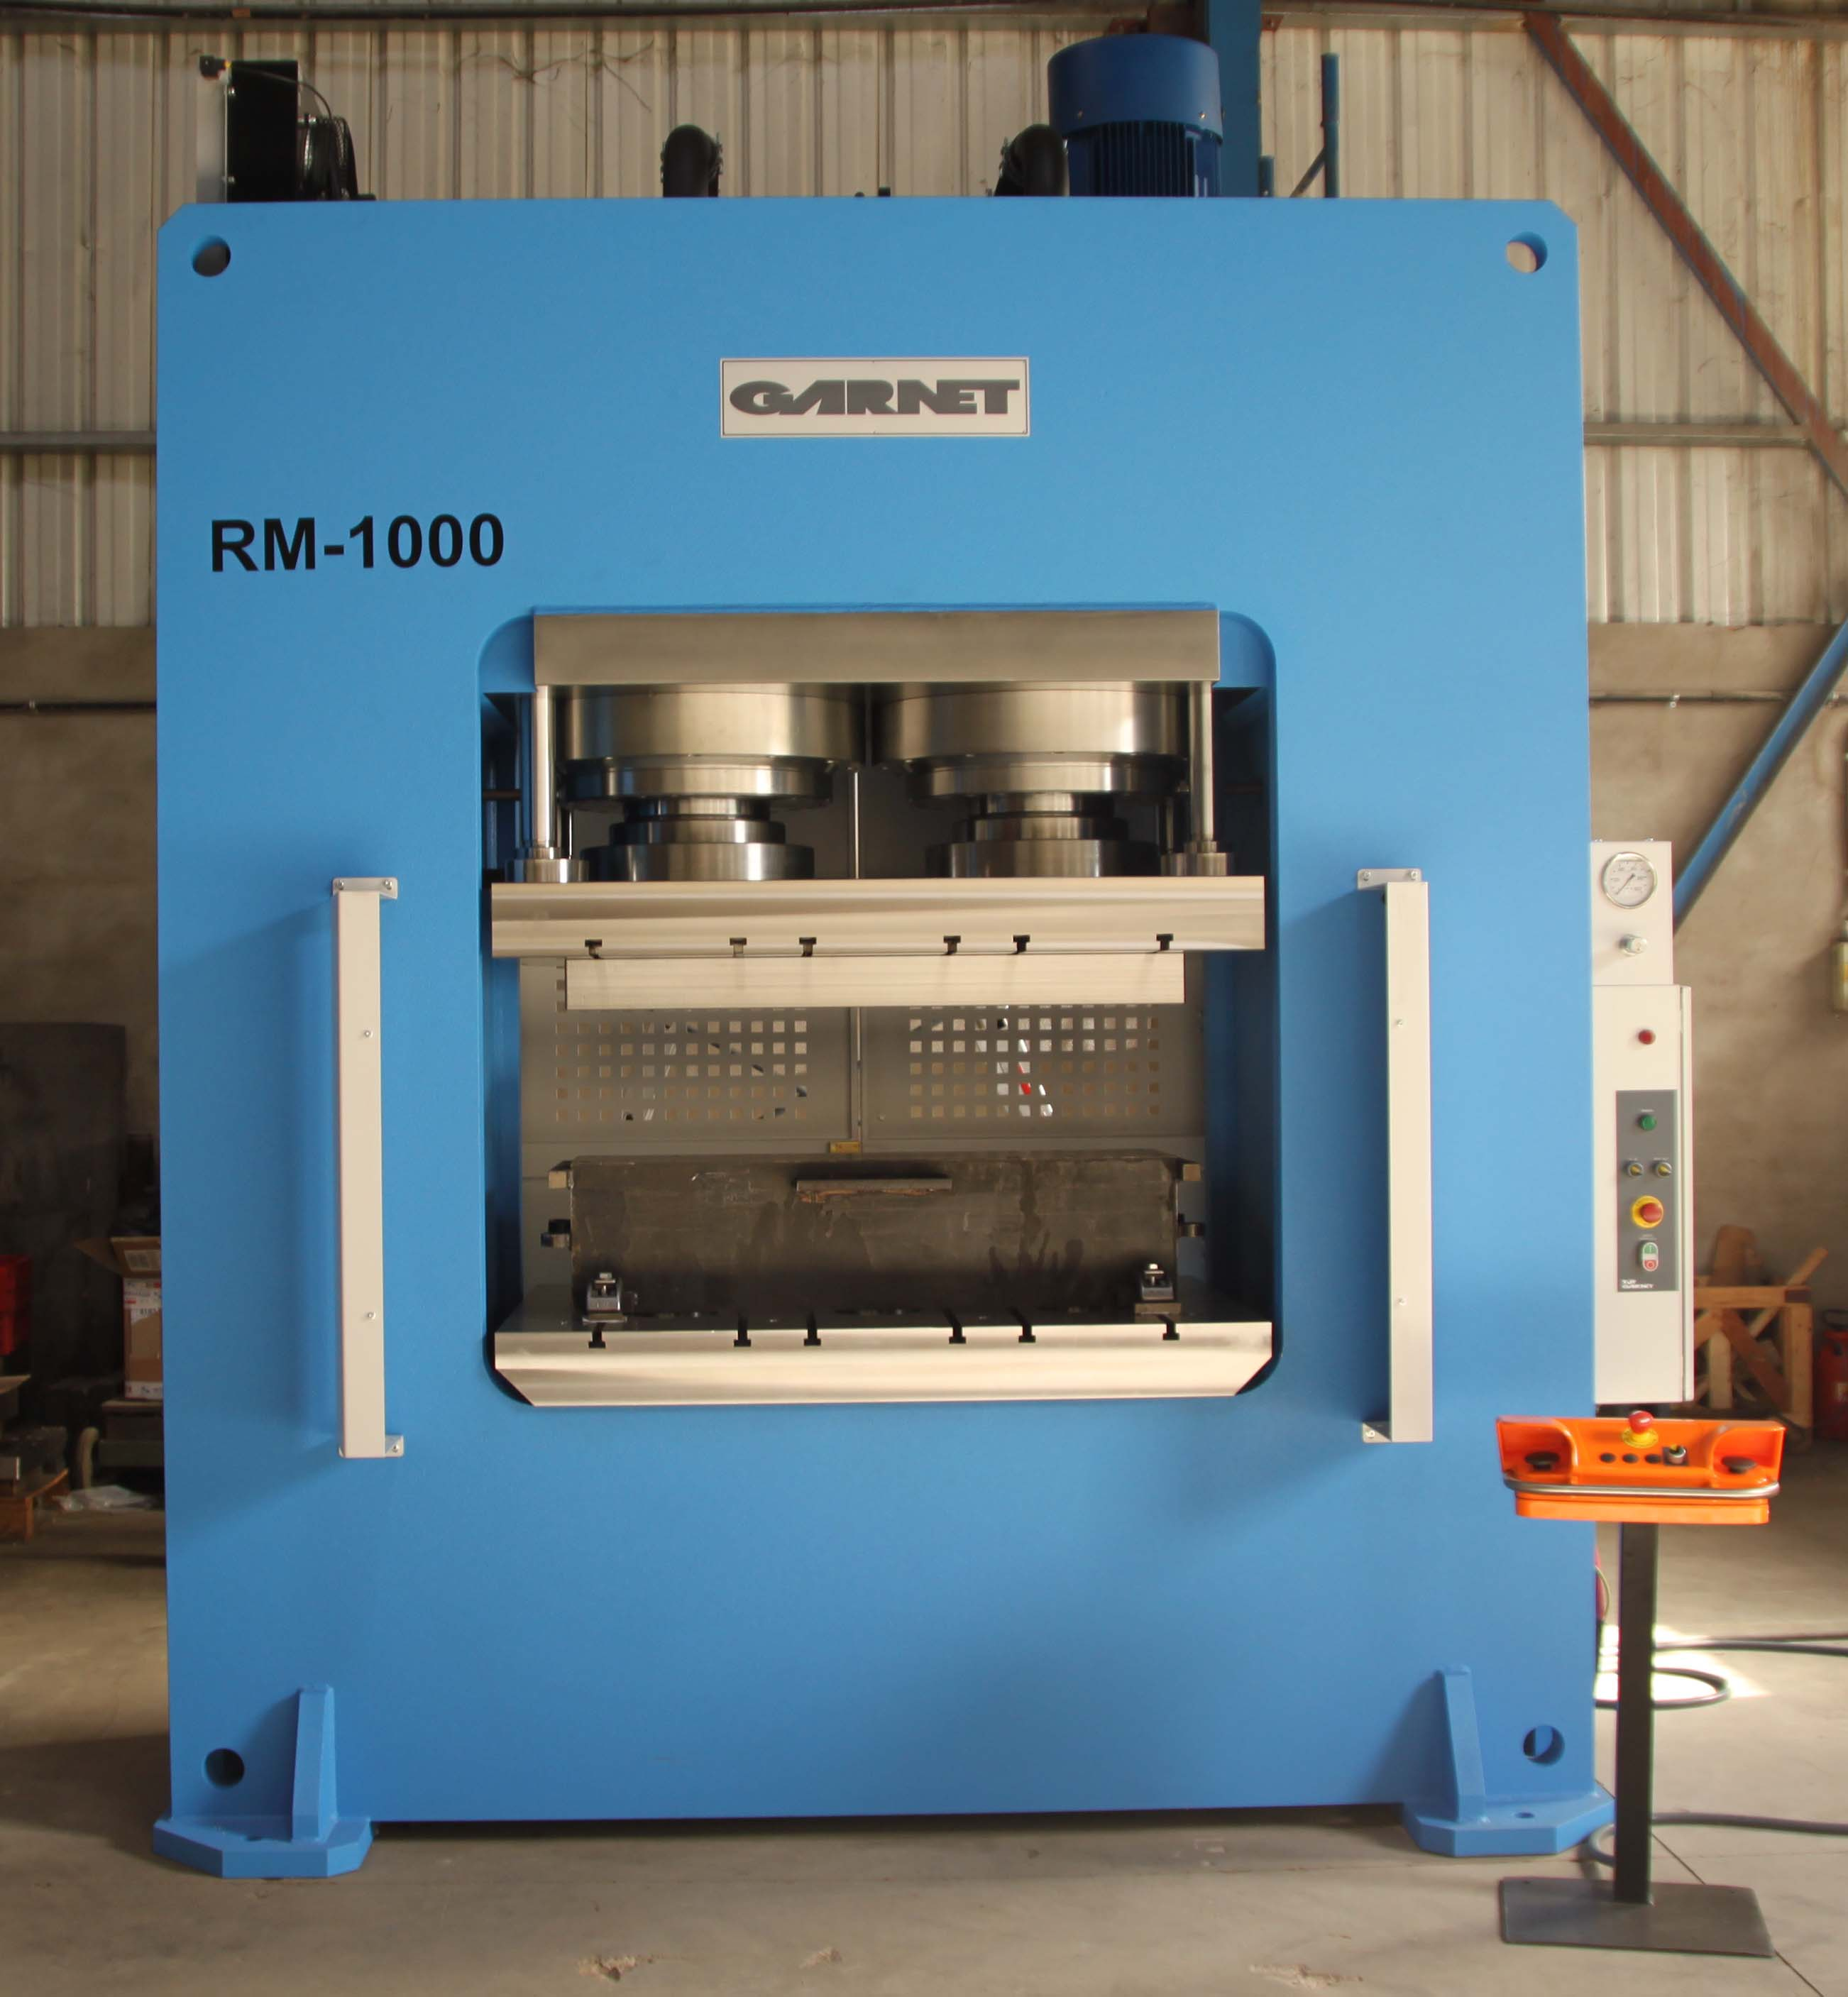 HIDROGARNE hydraulic press designed especially for cold forming